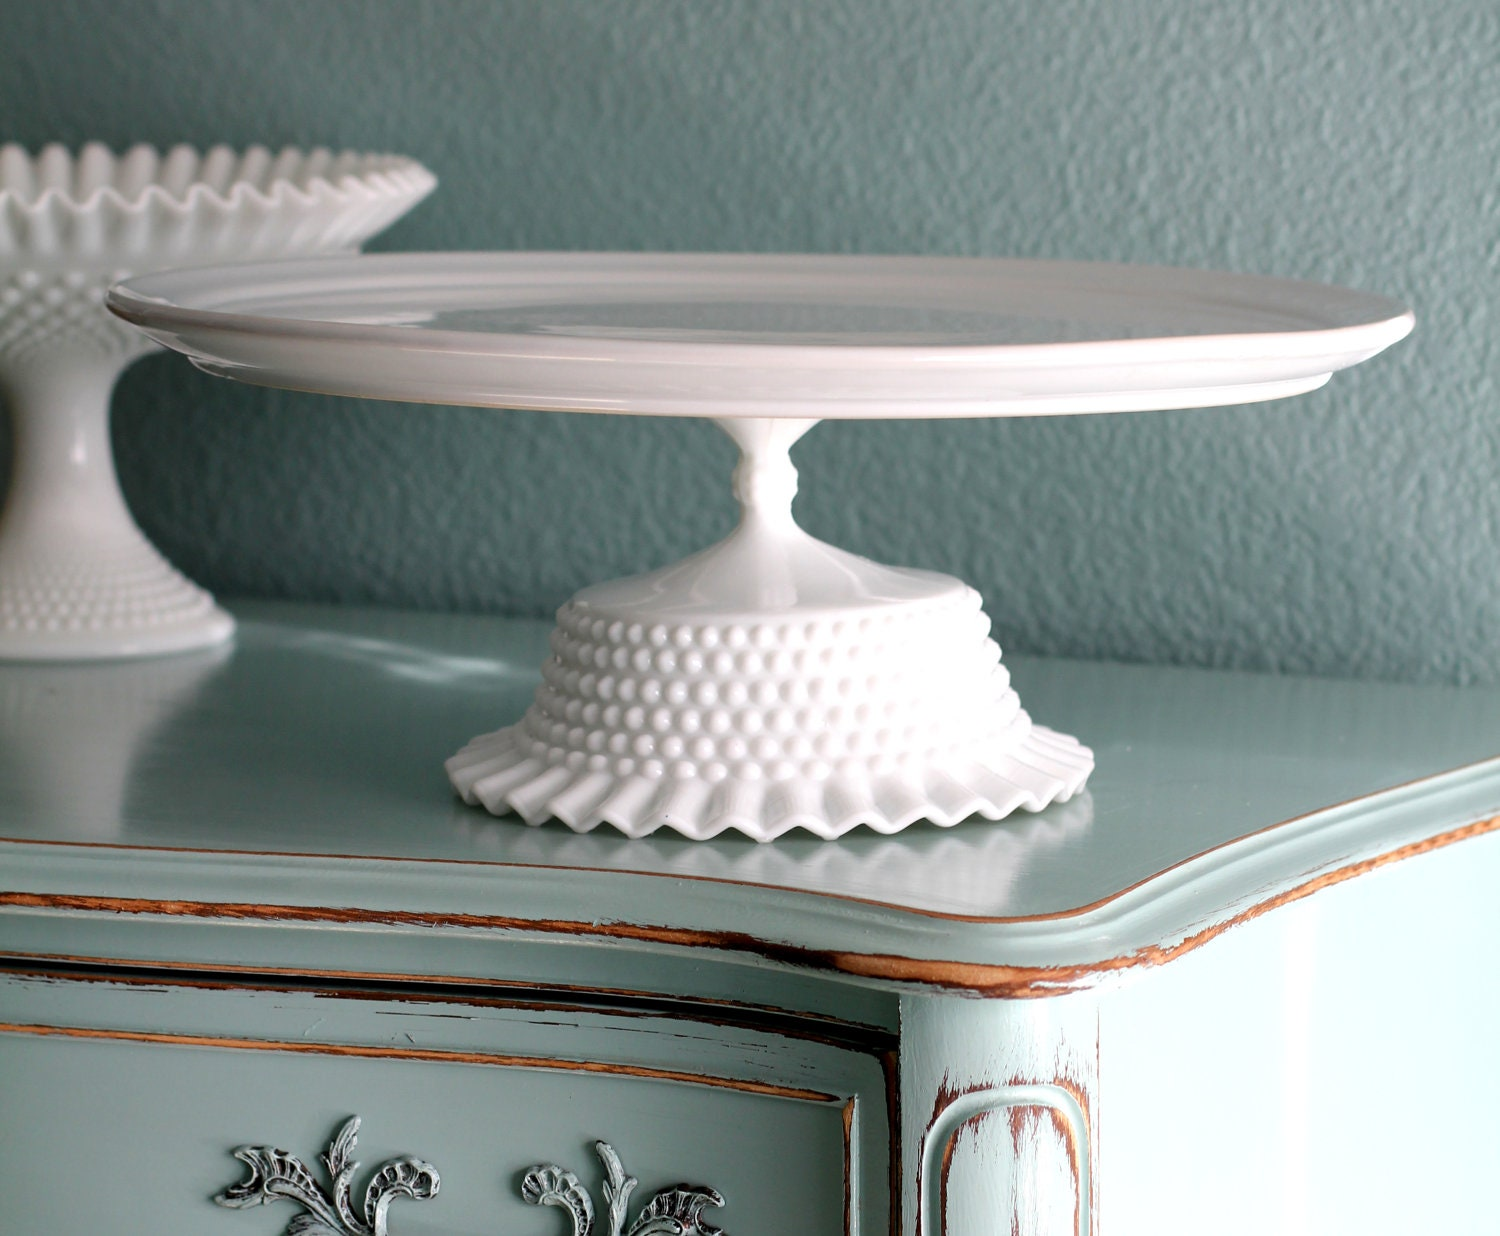 16 Cake Stand White Ceramic Cake Stand Cupcake By TheRocheStudio